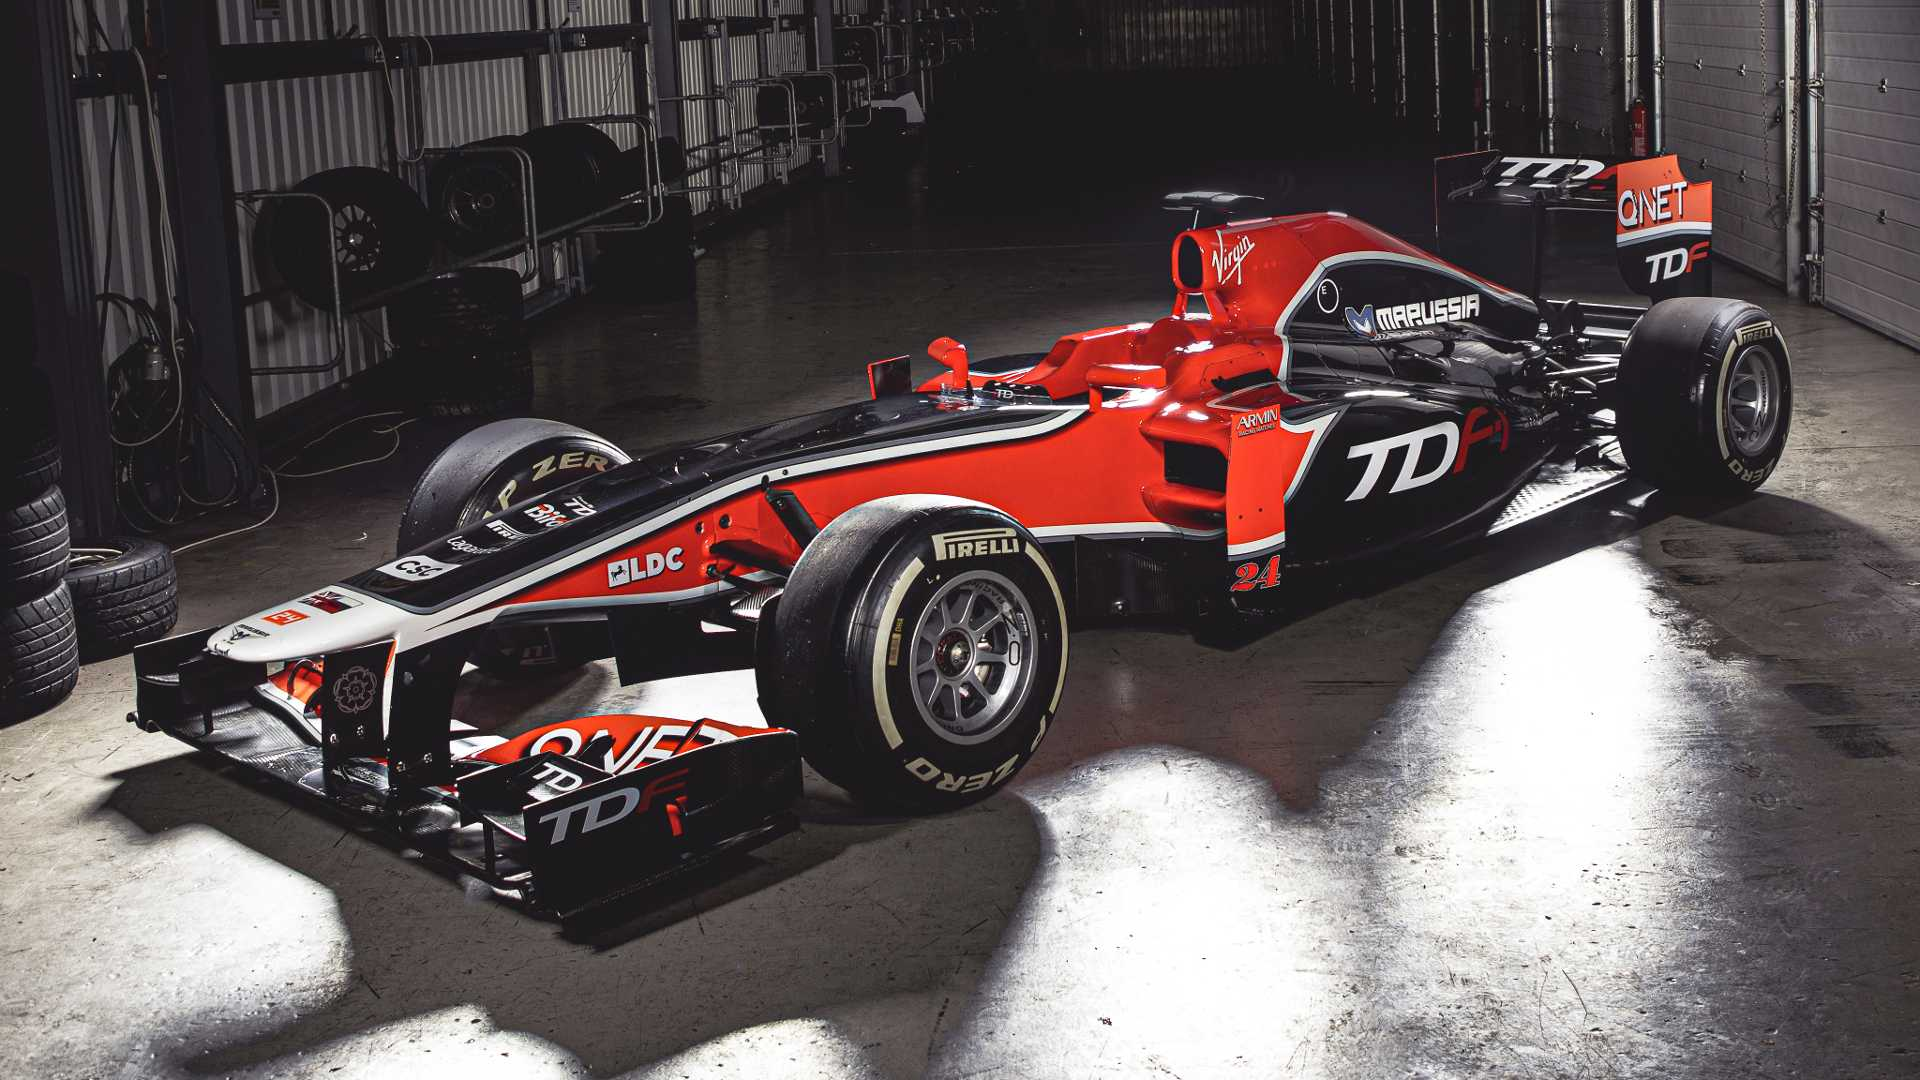 Show up to a trackday in an old Sauber or Virgin F1 car